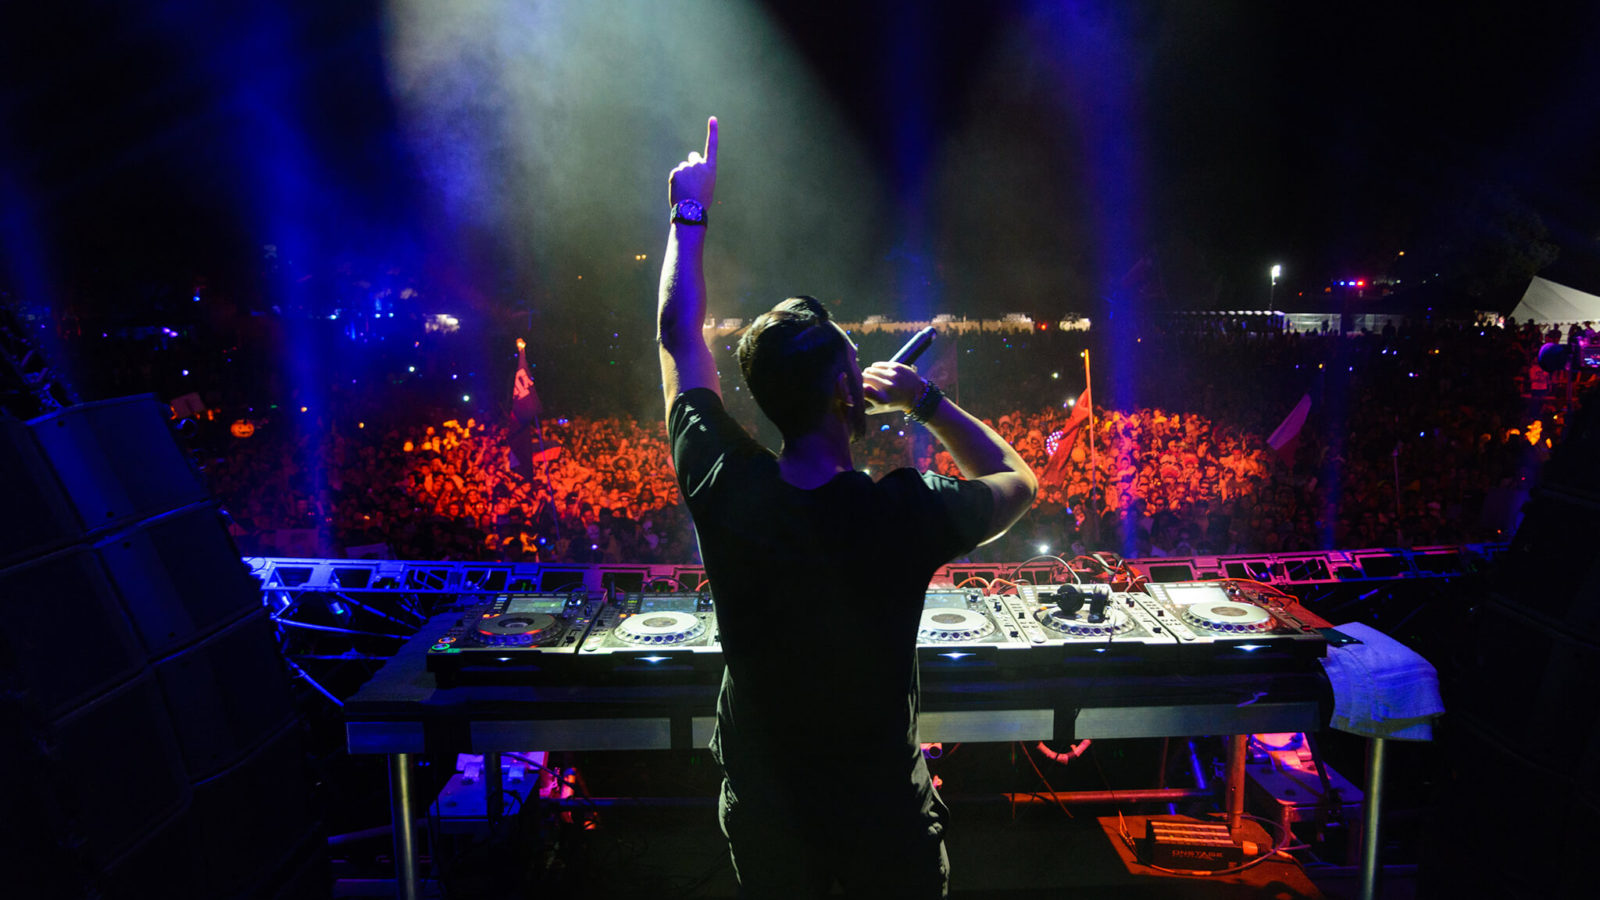 cedric gervais performing at something wicked